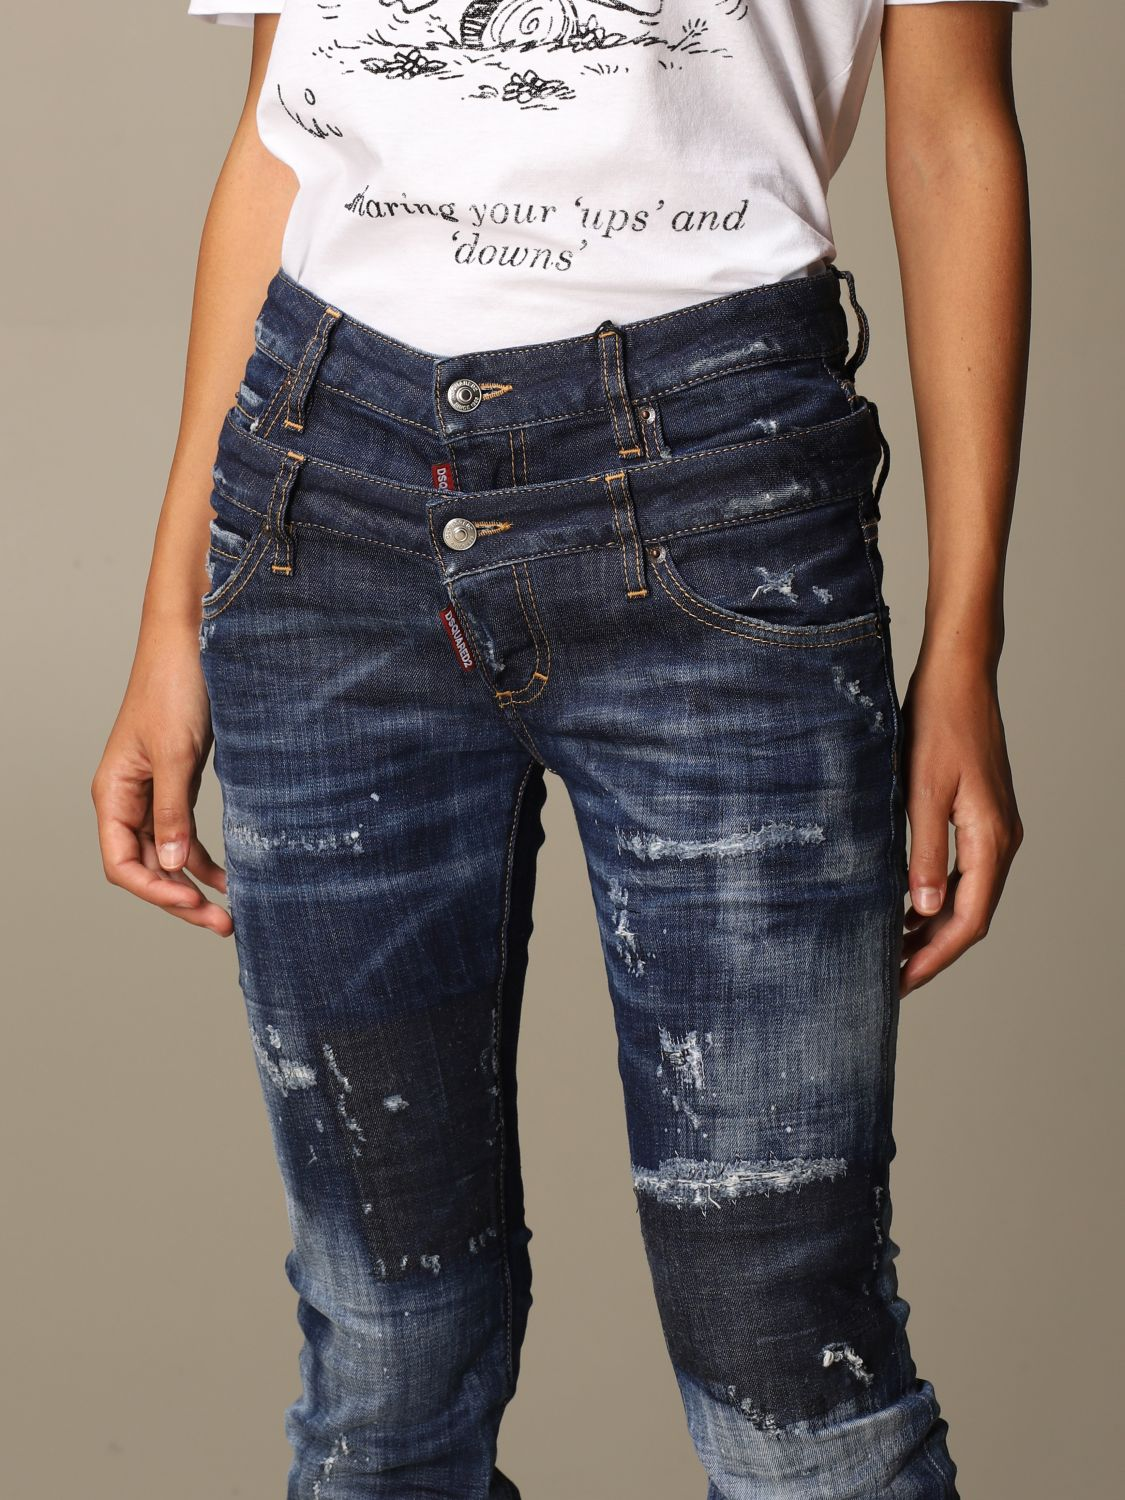 Jeans Mujer Dsquared2 Jeans Dsquared2 Mujer Denim Jeans Dsquared2 S72lb0315 S30342 Giglio Es